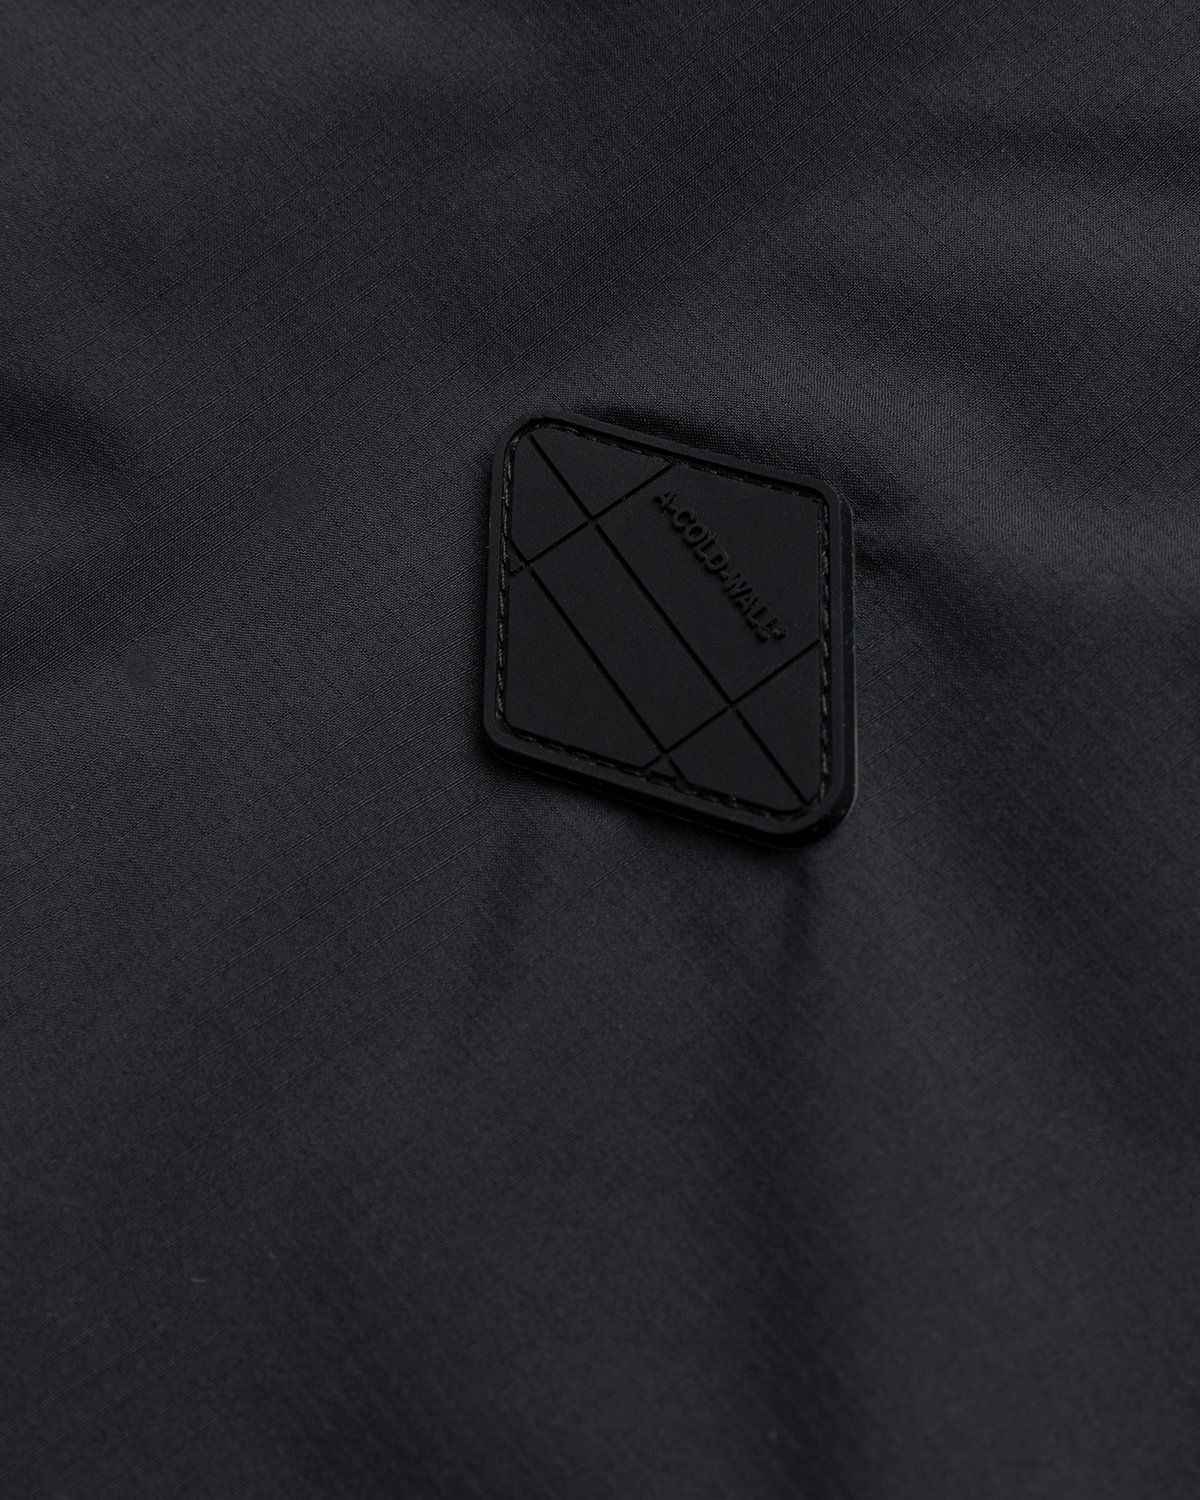 A-COLD-WALL* – Technical Bomber Black - Image 4